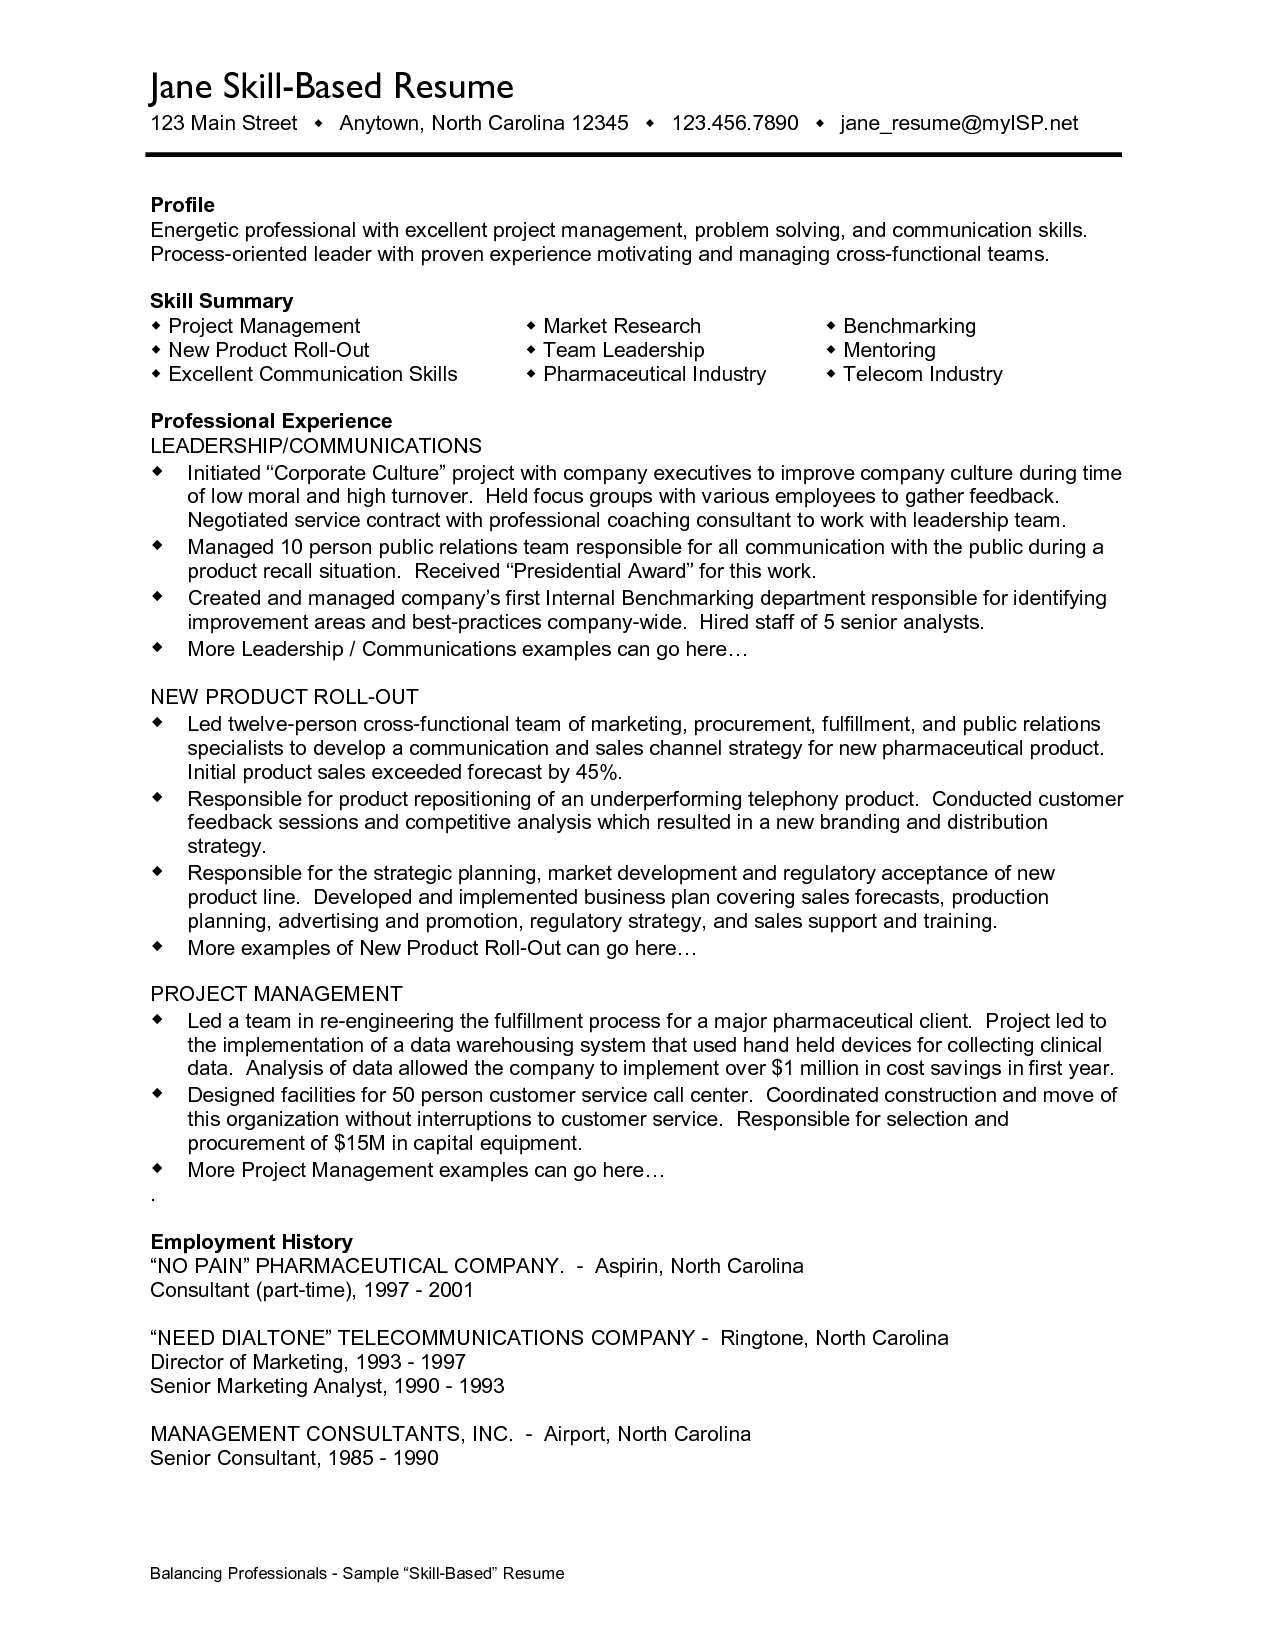 Resume Skills Example Job Resume Communication Skills  Httpwwwresumecareerjob